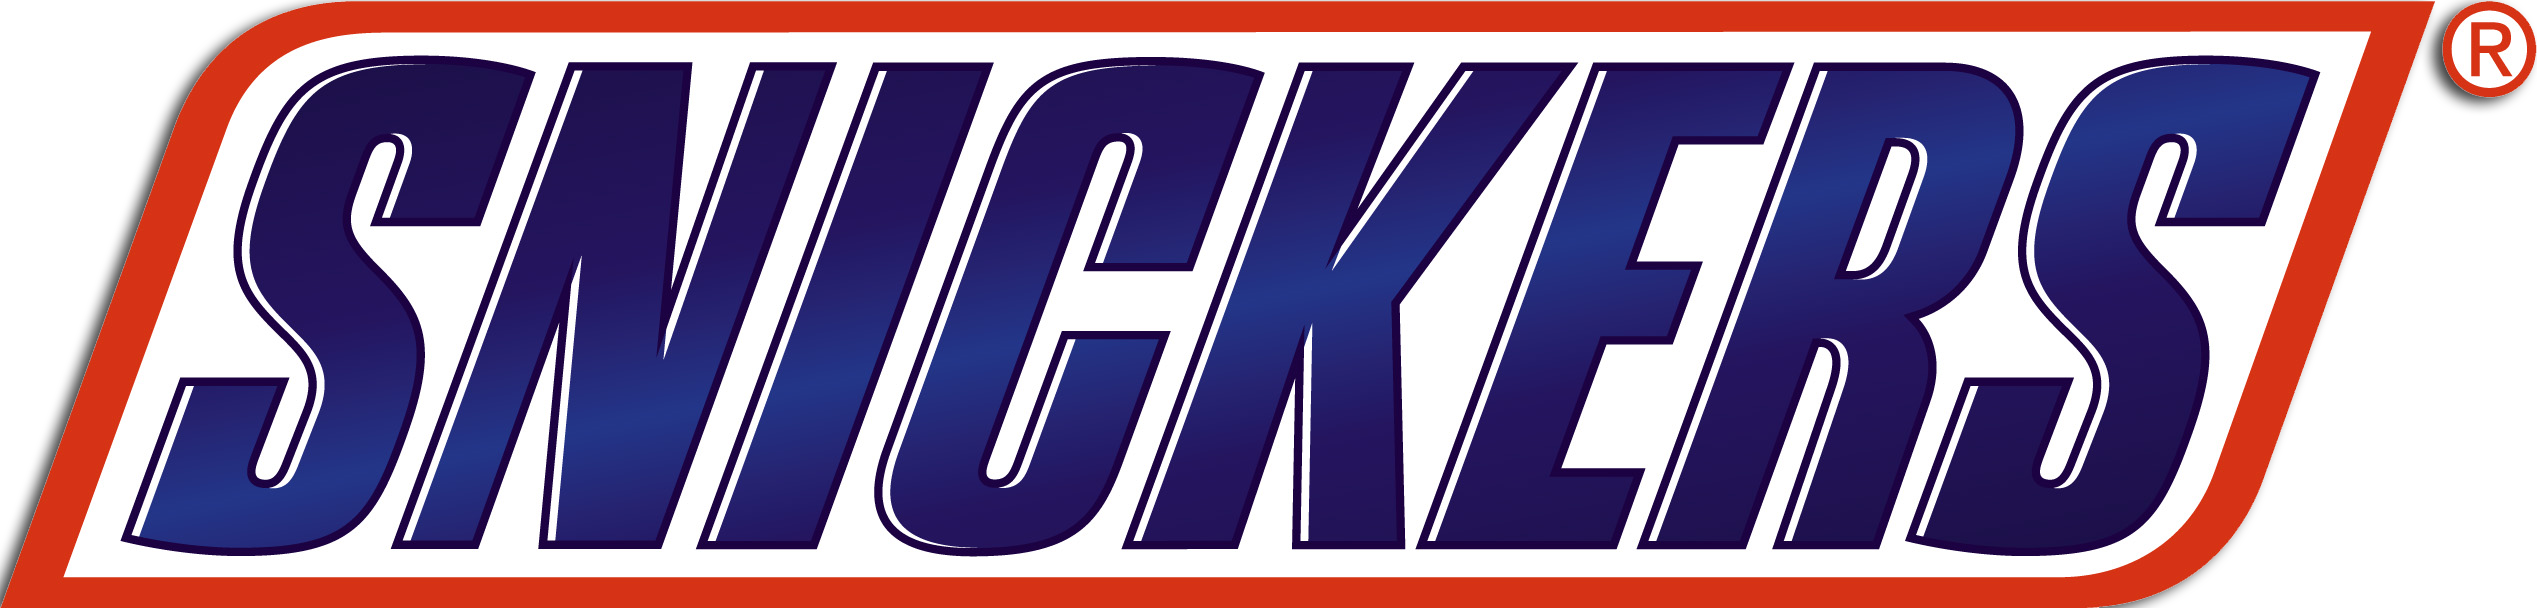 Snickers logo PNG - Snickers HD PNG